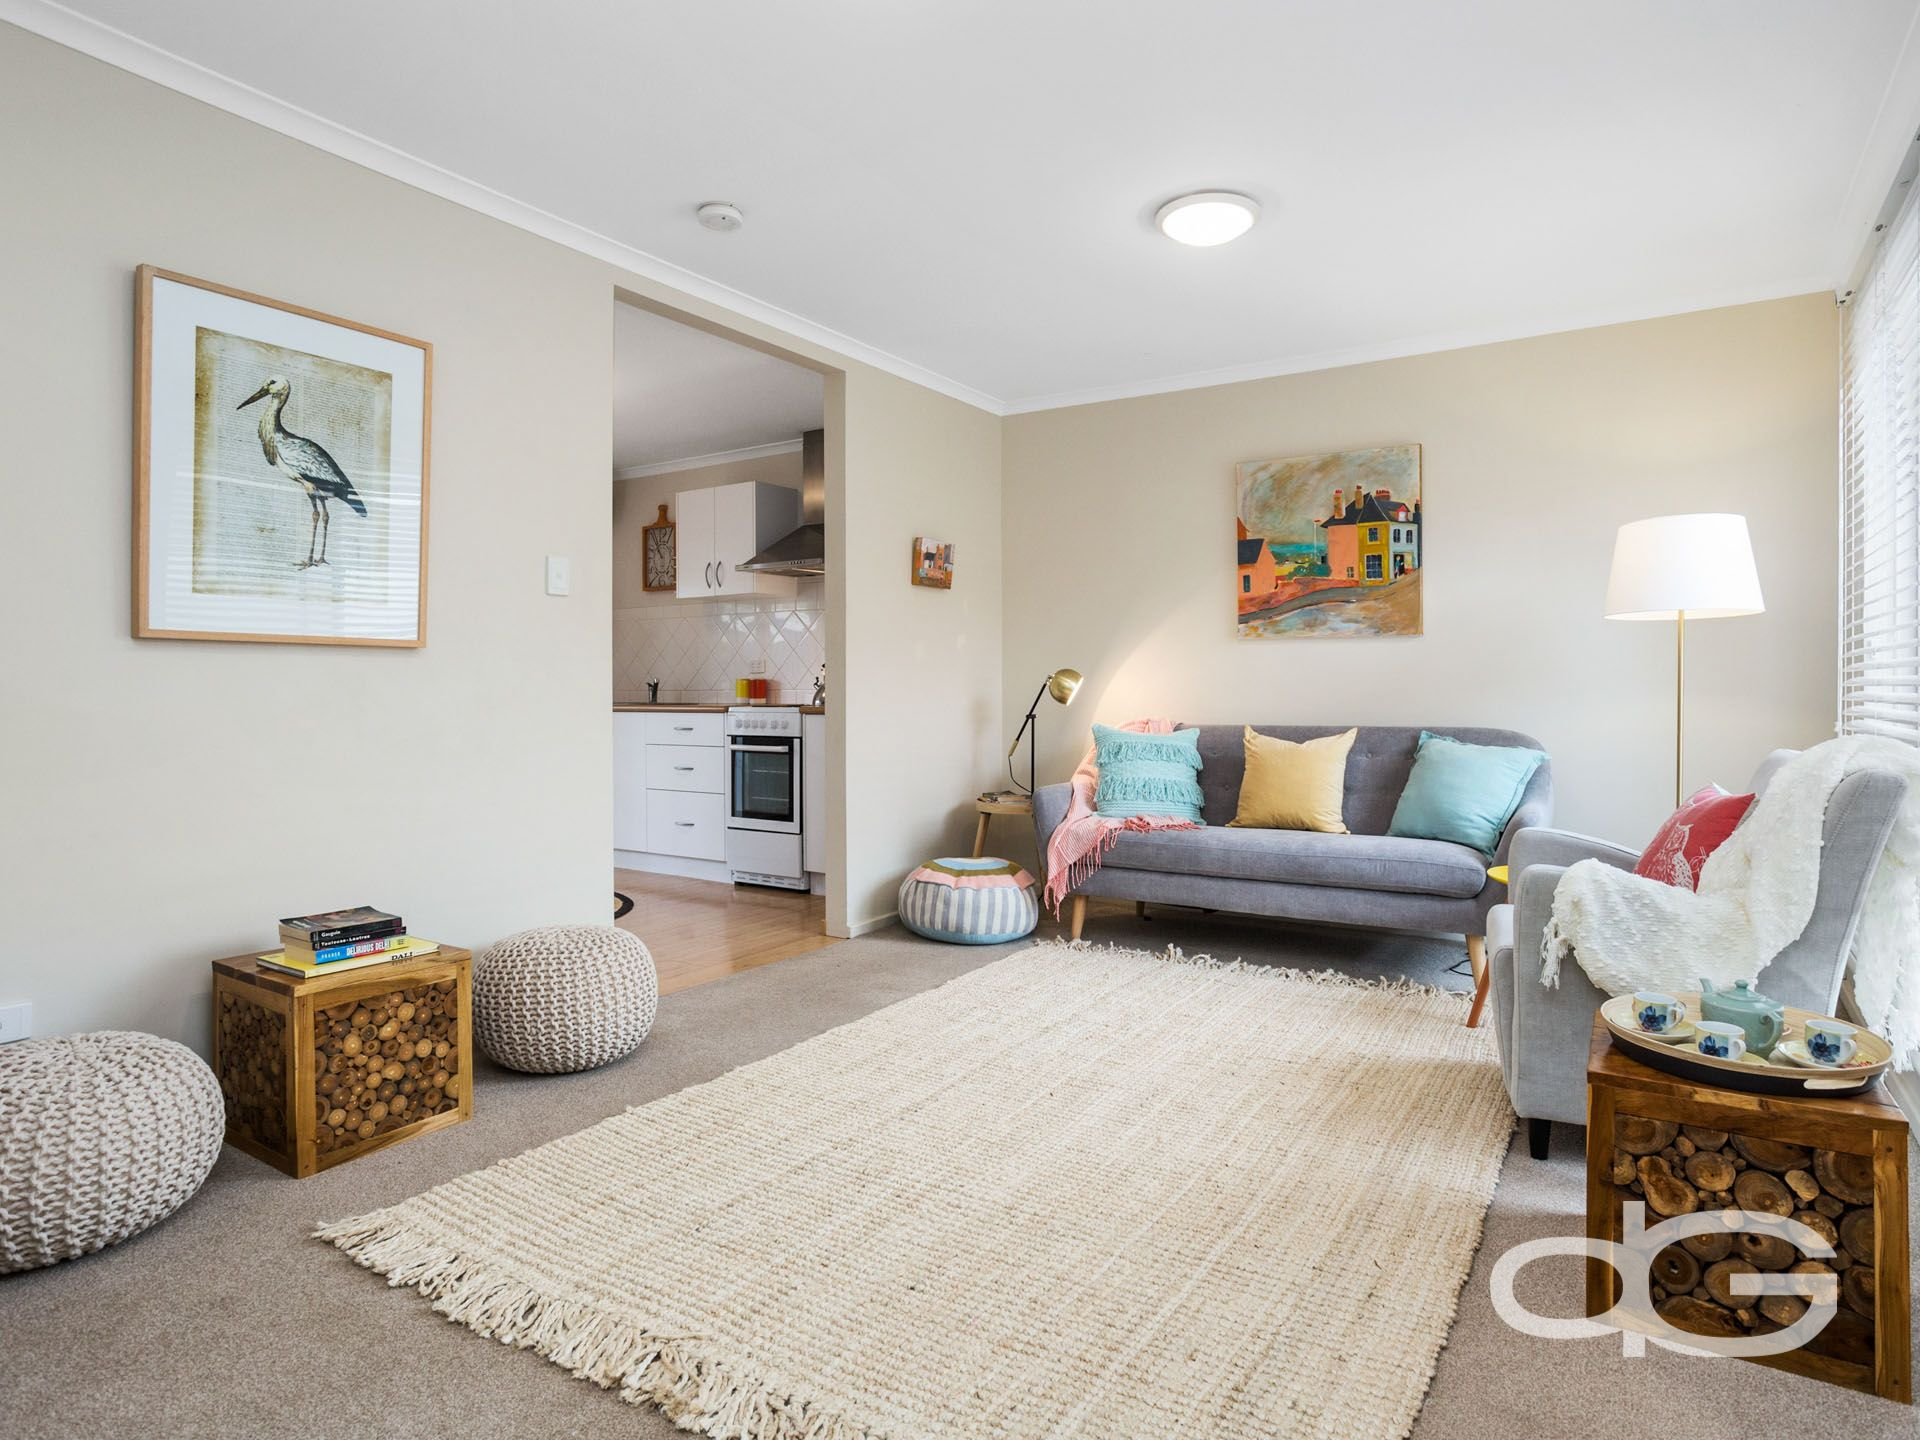 3/84 Hubble Street, East Fremantle